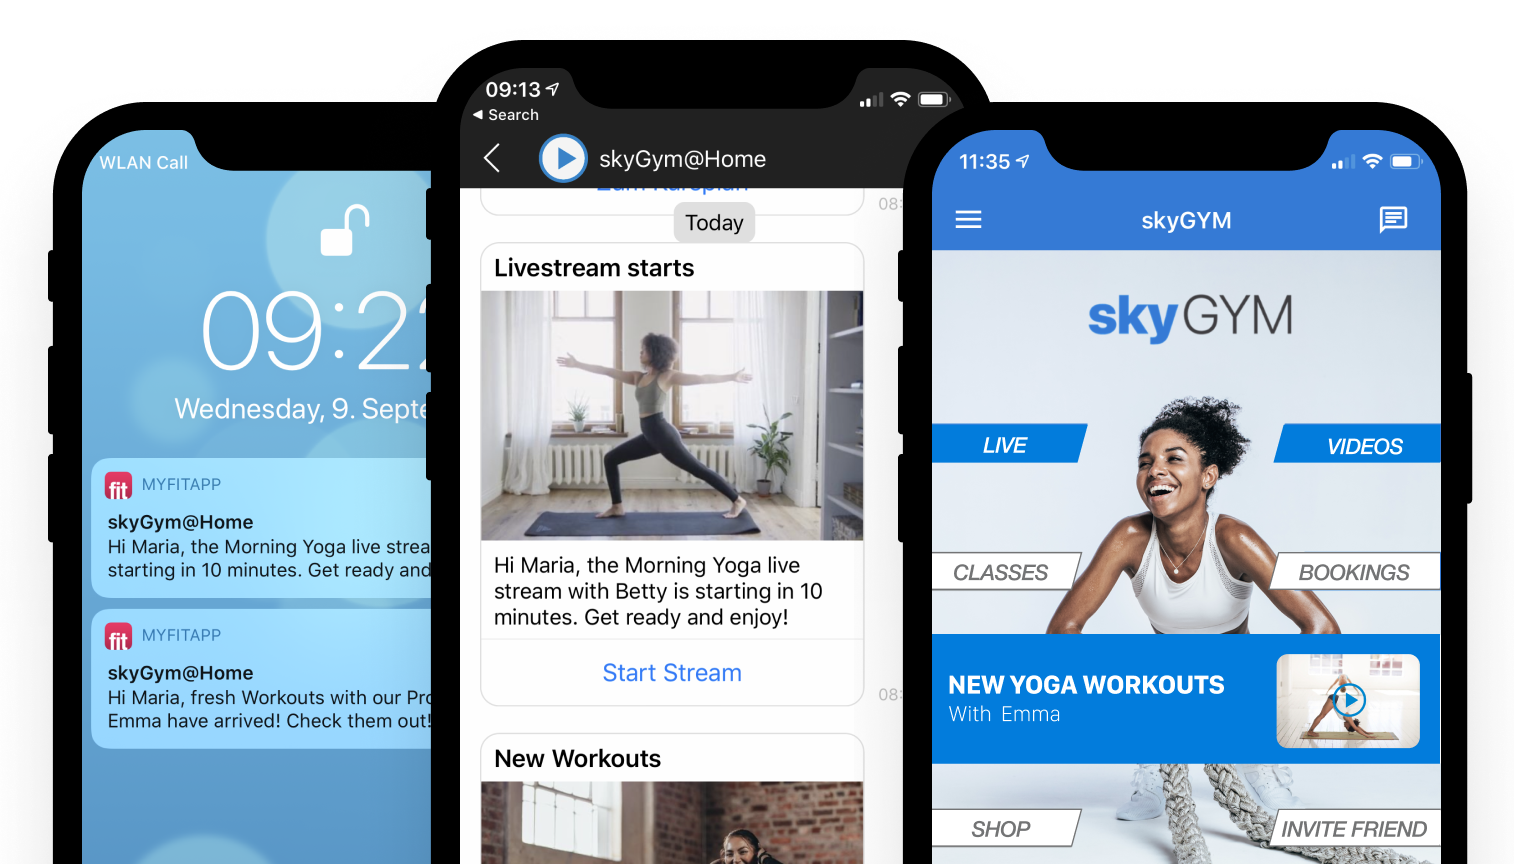 myFitApp@home Built-in Marketing tools to promote videos and streams with push messages